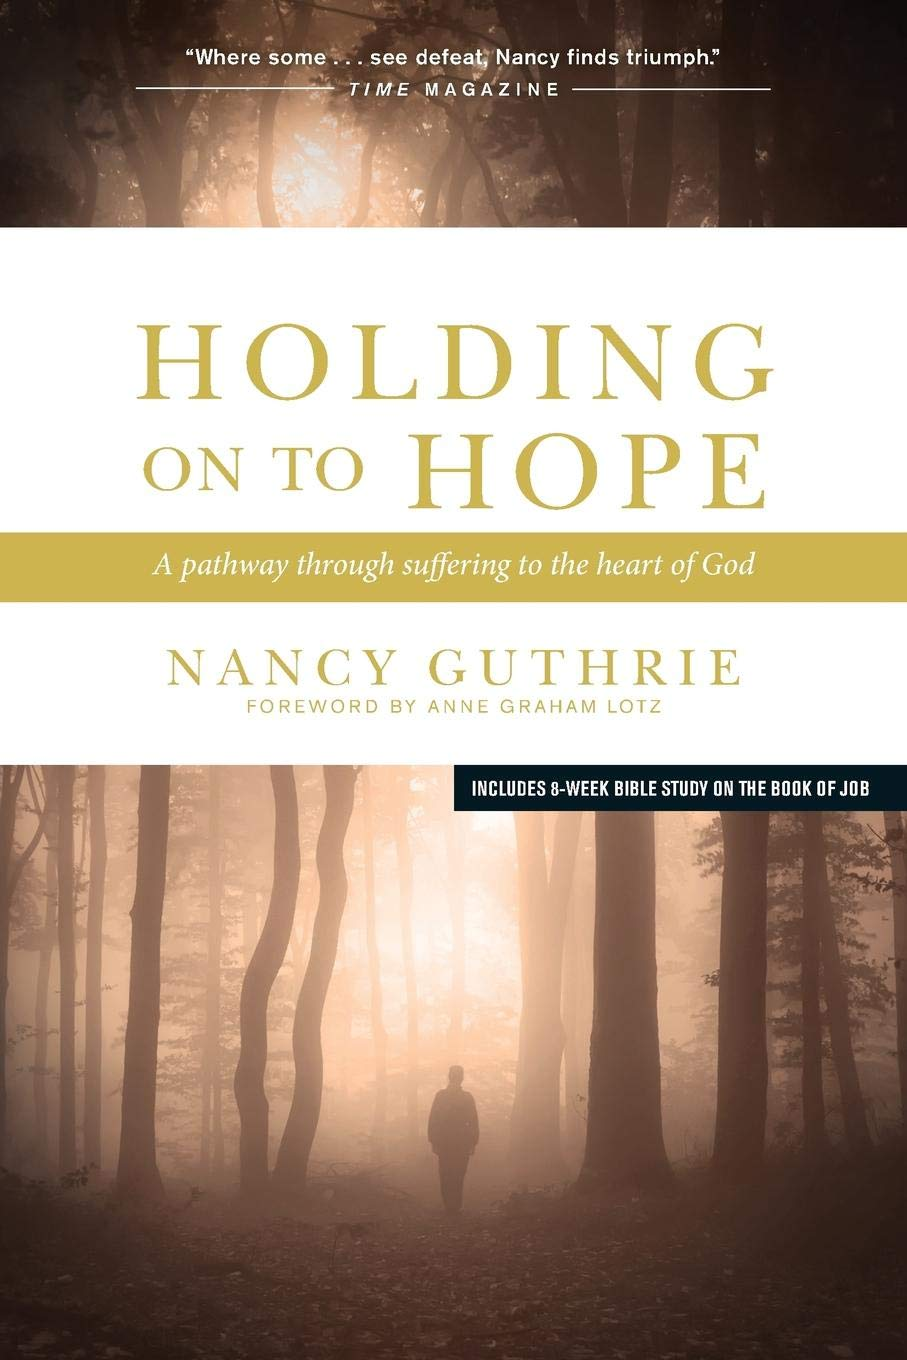 Holding On to Hope: A Pathway through Suffering to the Heart